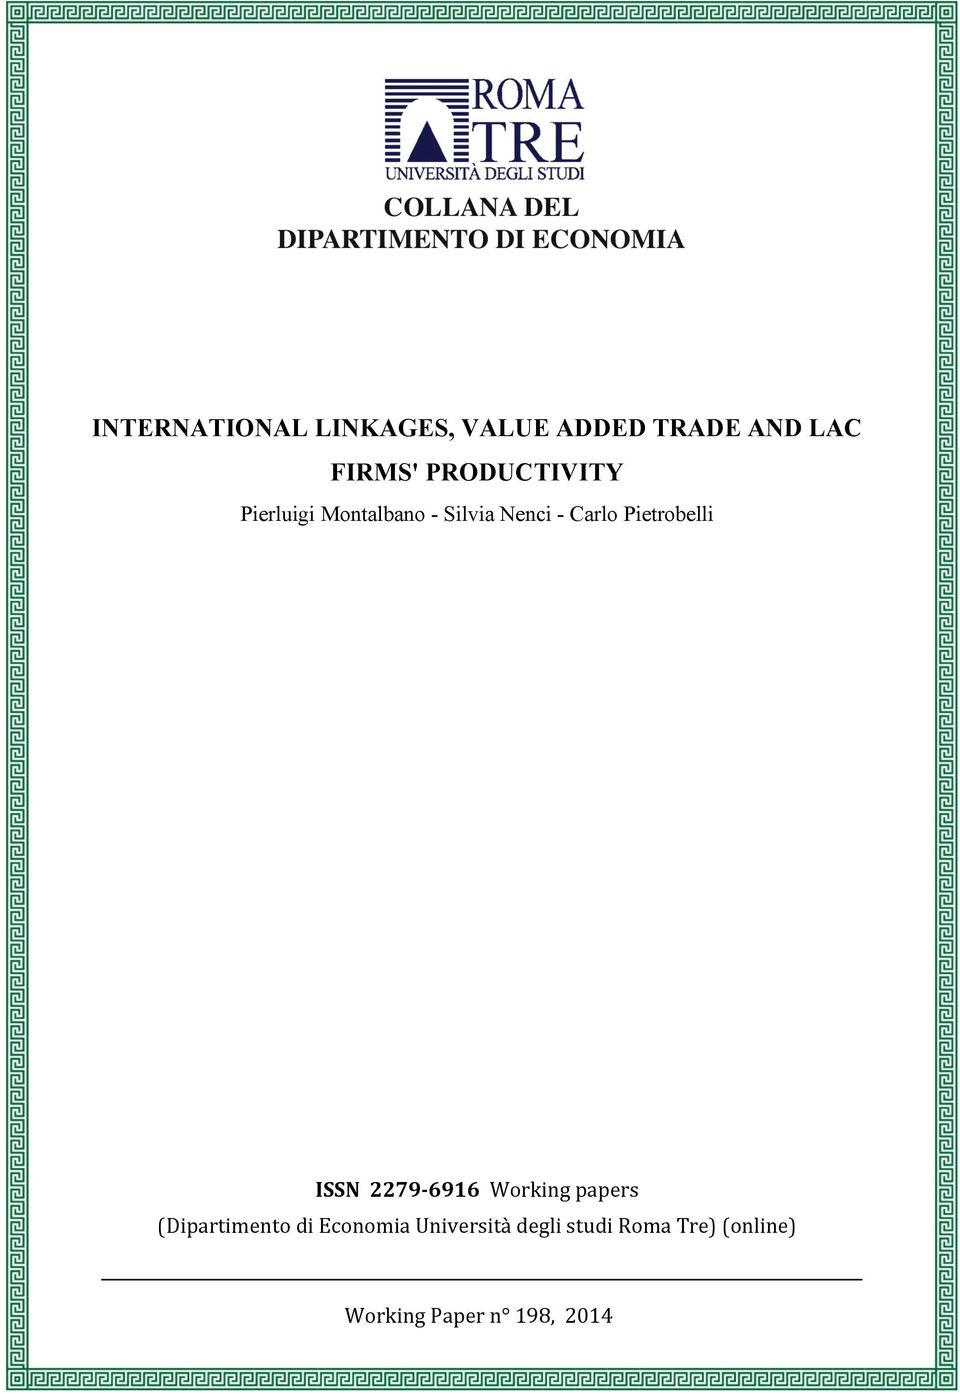 Pietrobelli ISSN 2279-6916 Working papers (Dipartimento di